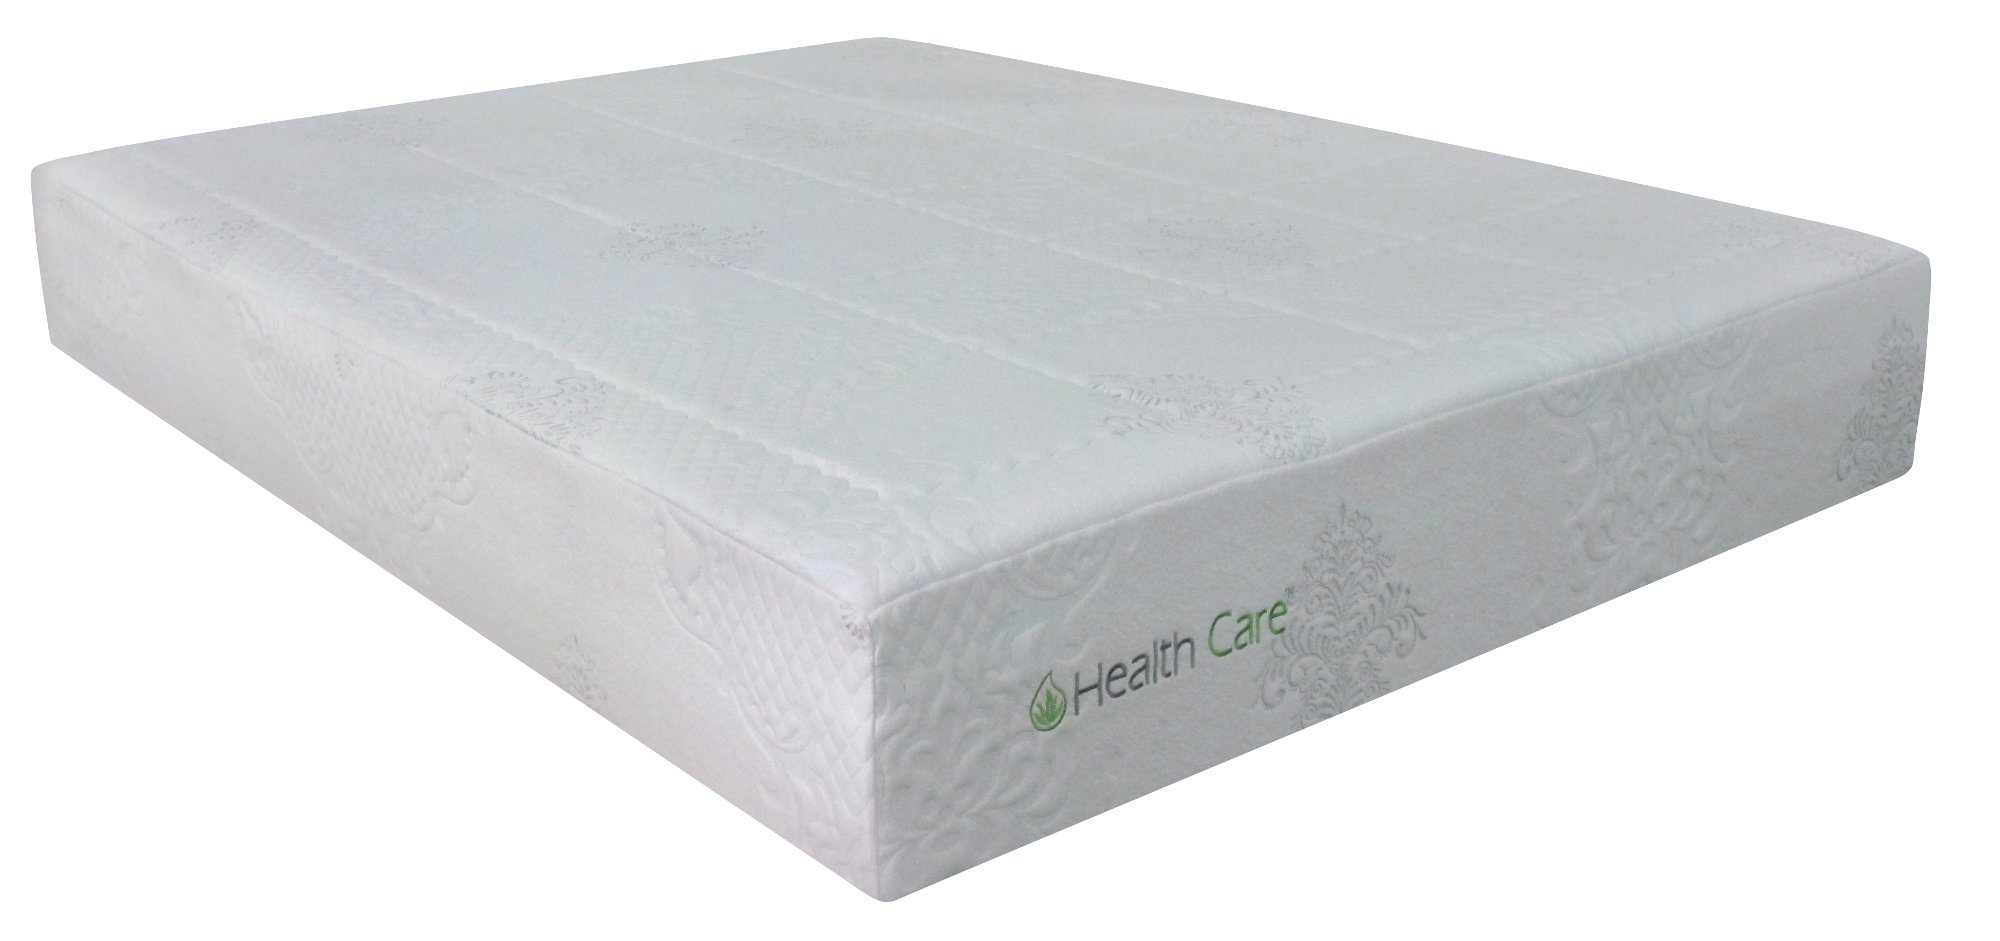 King 12 Inch Luxurygel Mattress With Adjustable Base Rc Willey Furniture Store